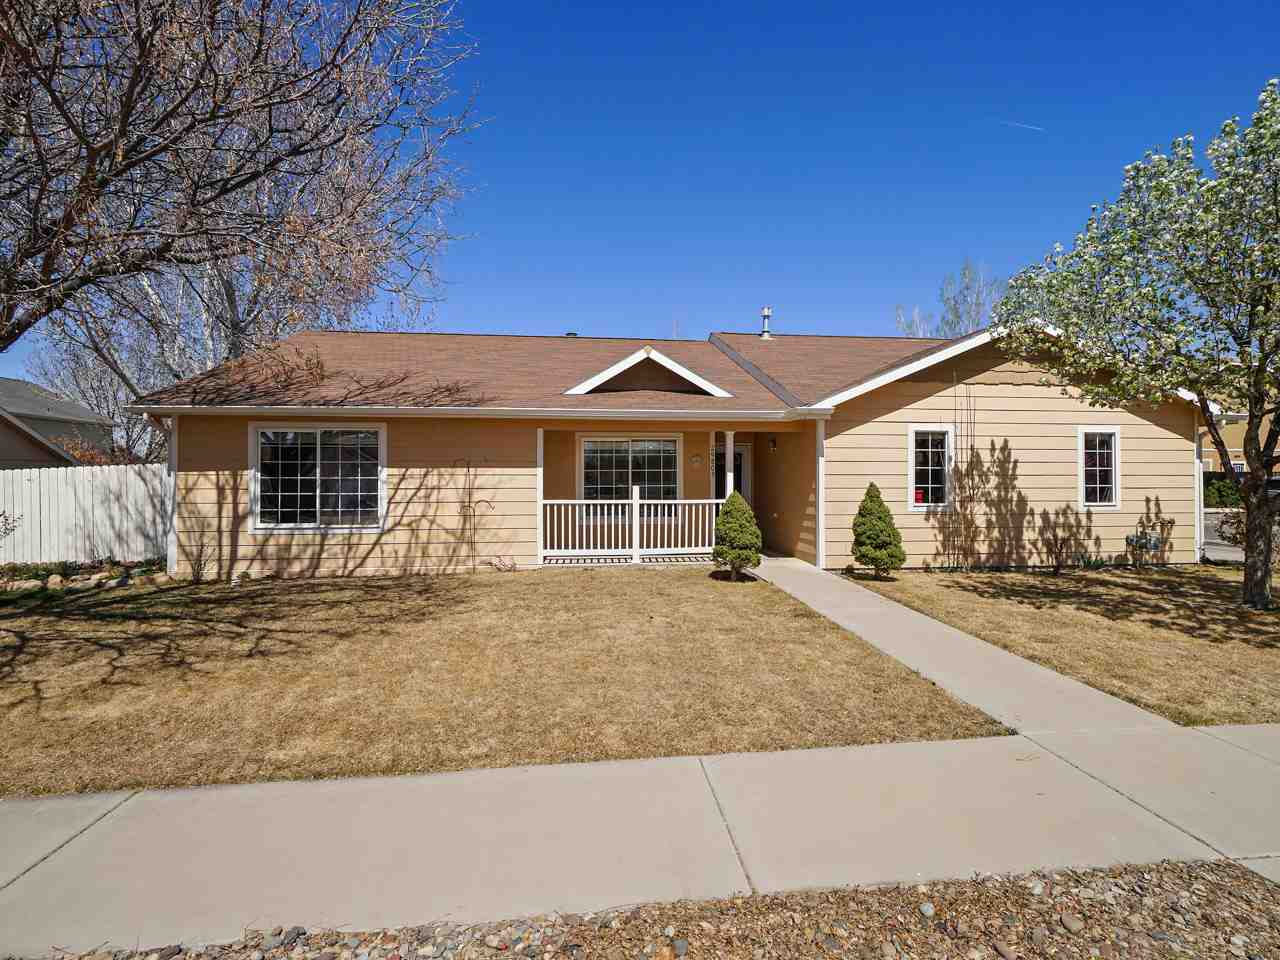 2980 1/2 Redbud Court Property Photo - Grand Junction, CO real estate listing